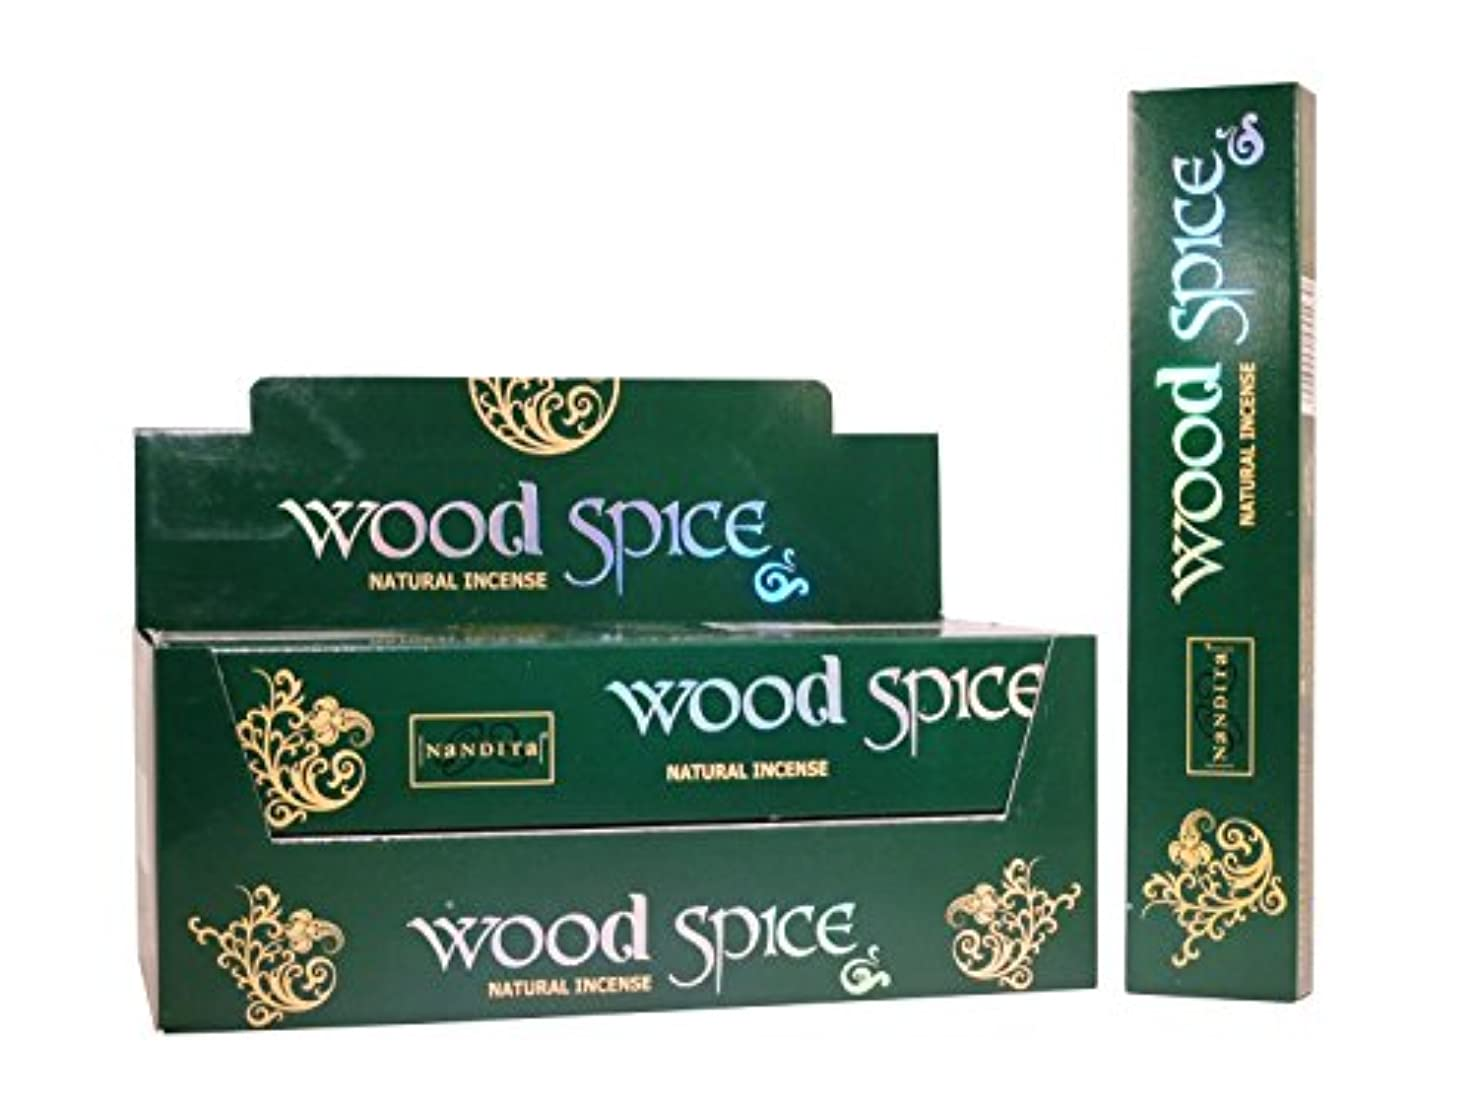 明日槍考古学者Nandita Wood Spice Natural Incense